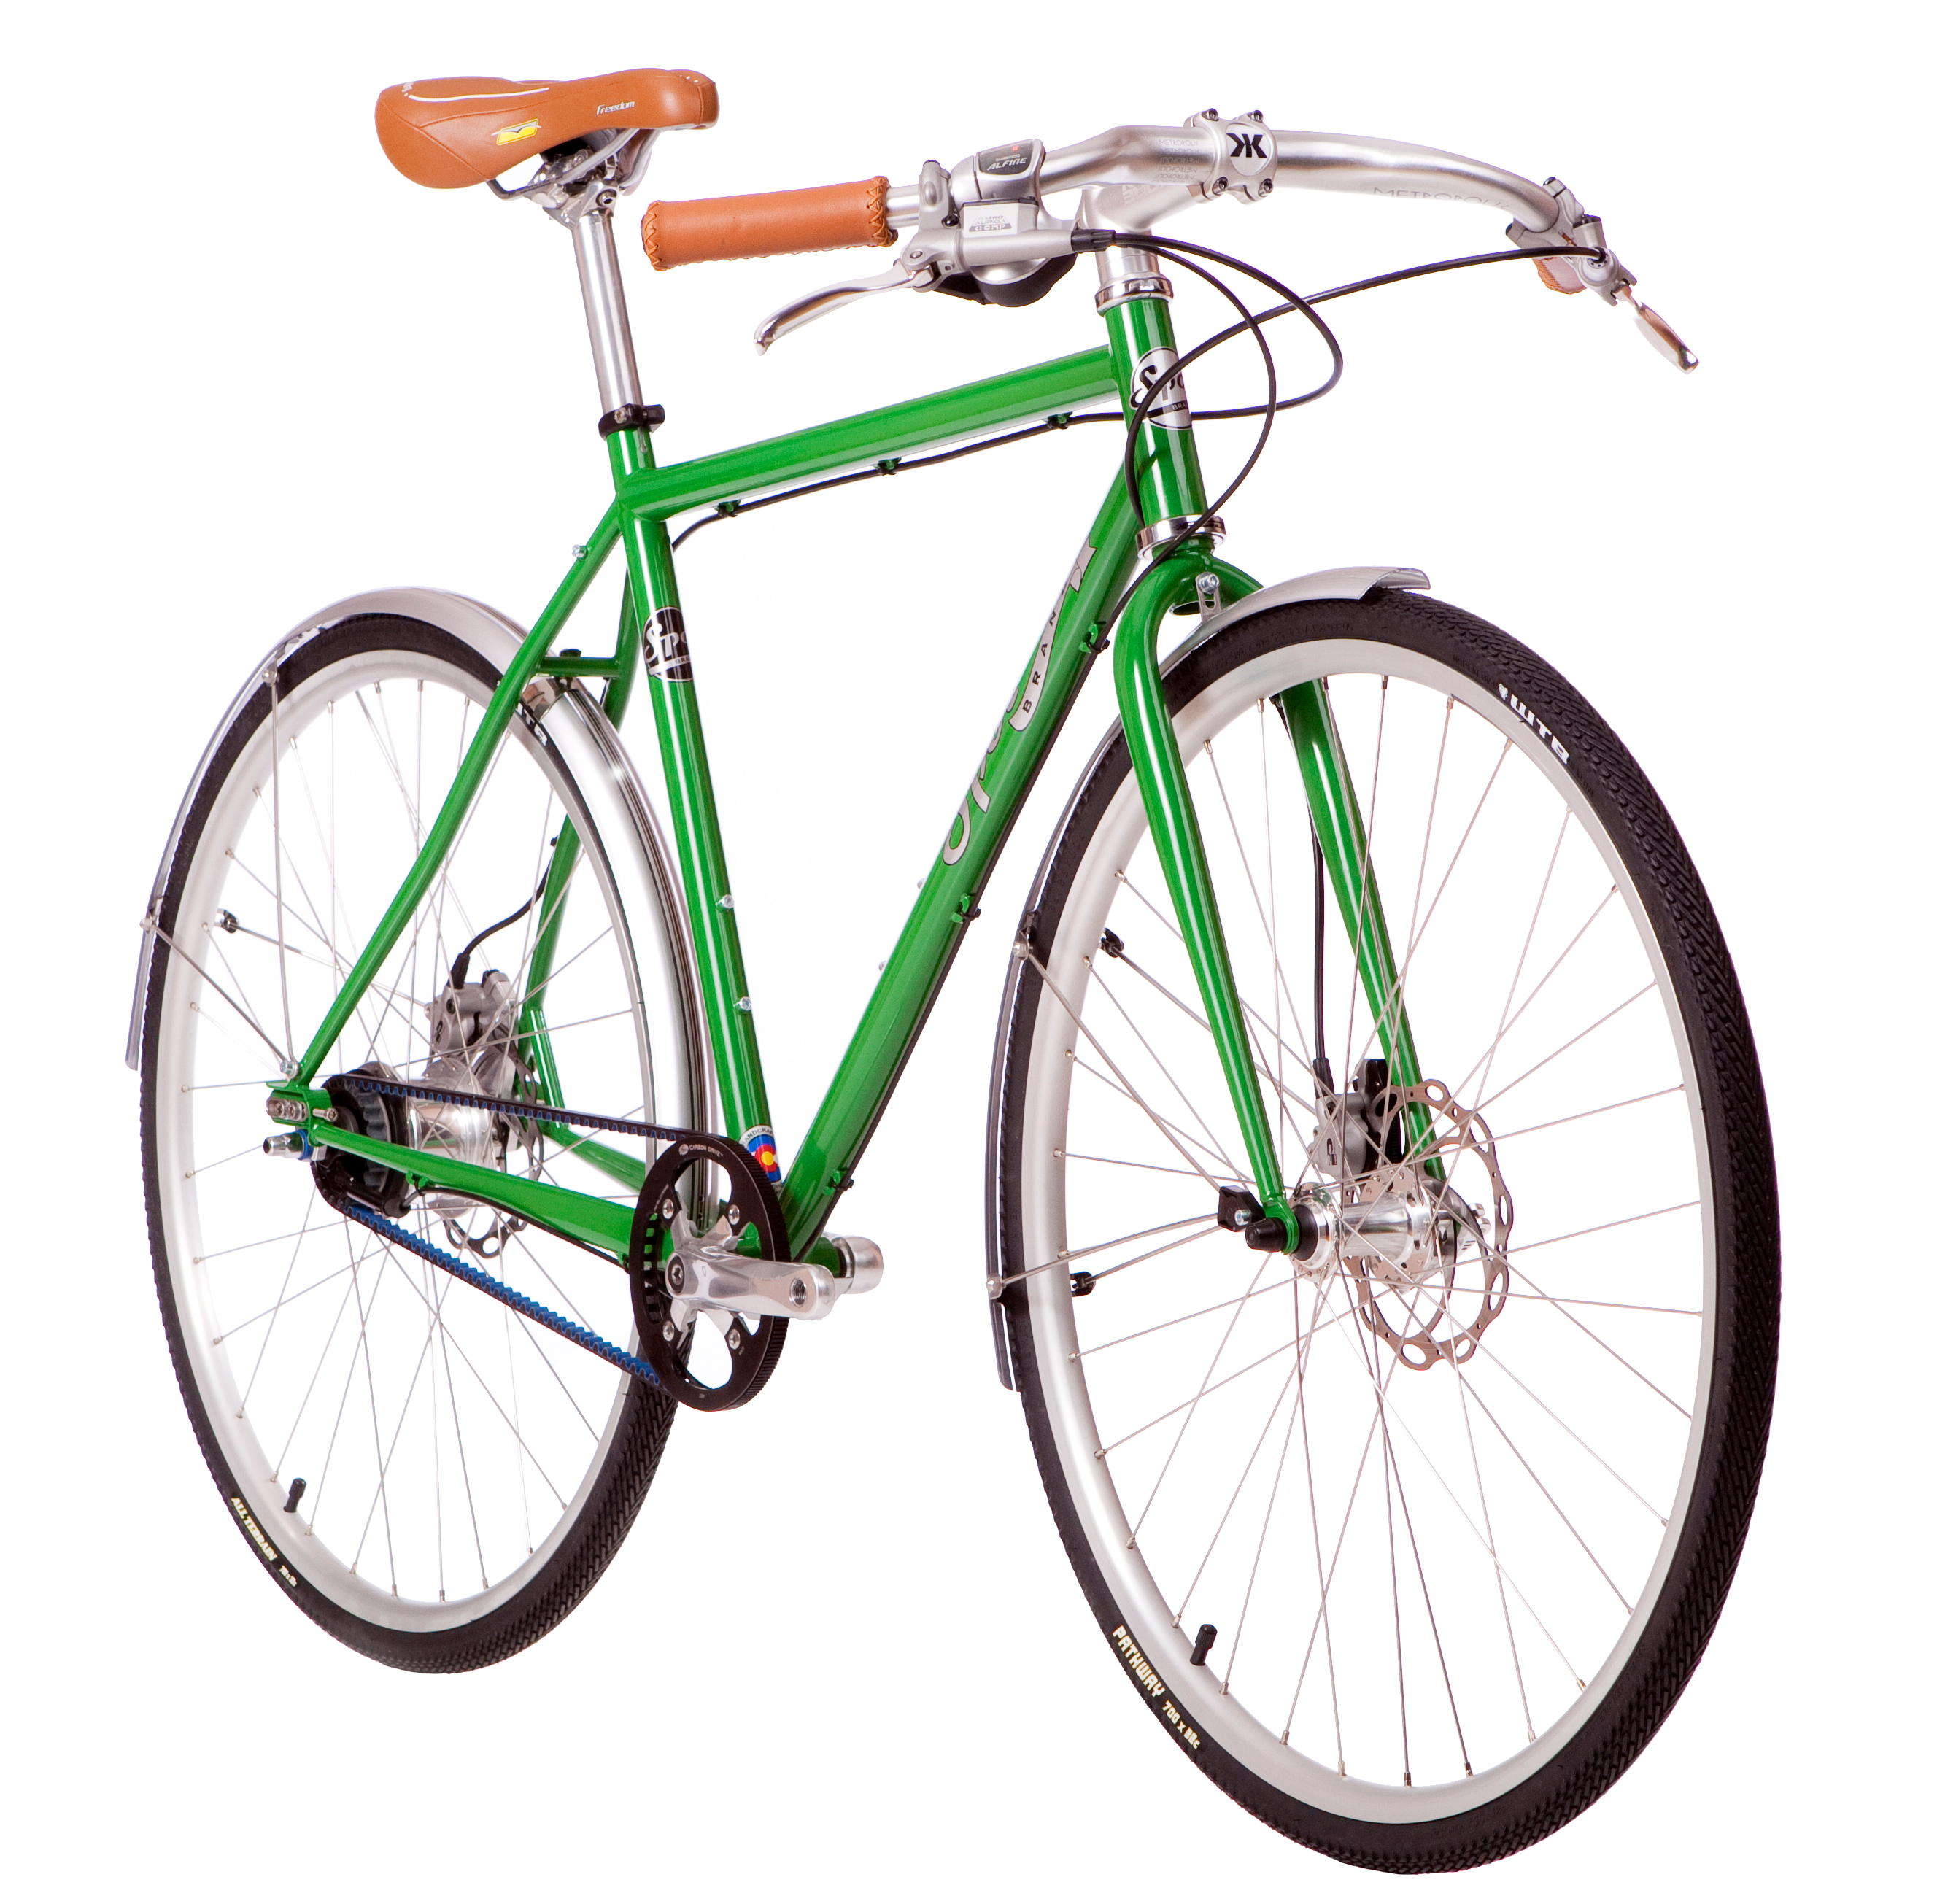 The Spot Brand 8-speed Sprawl commuter bike is outfitted with Gates Carbon Drive technology.